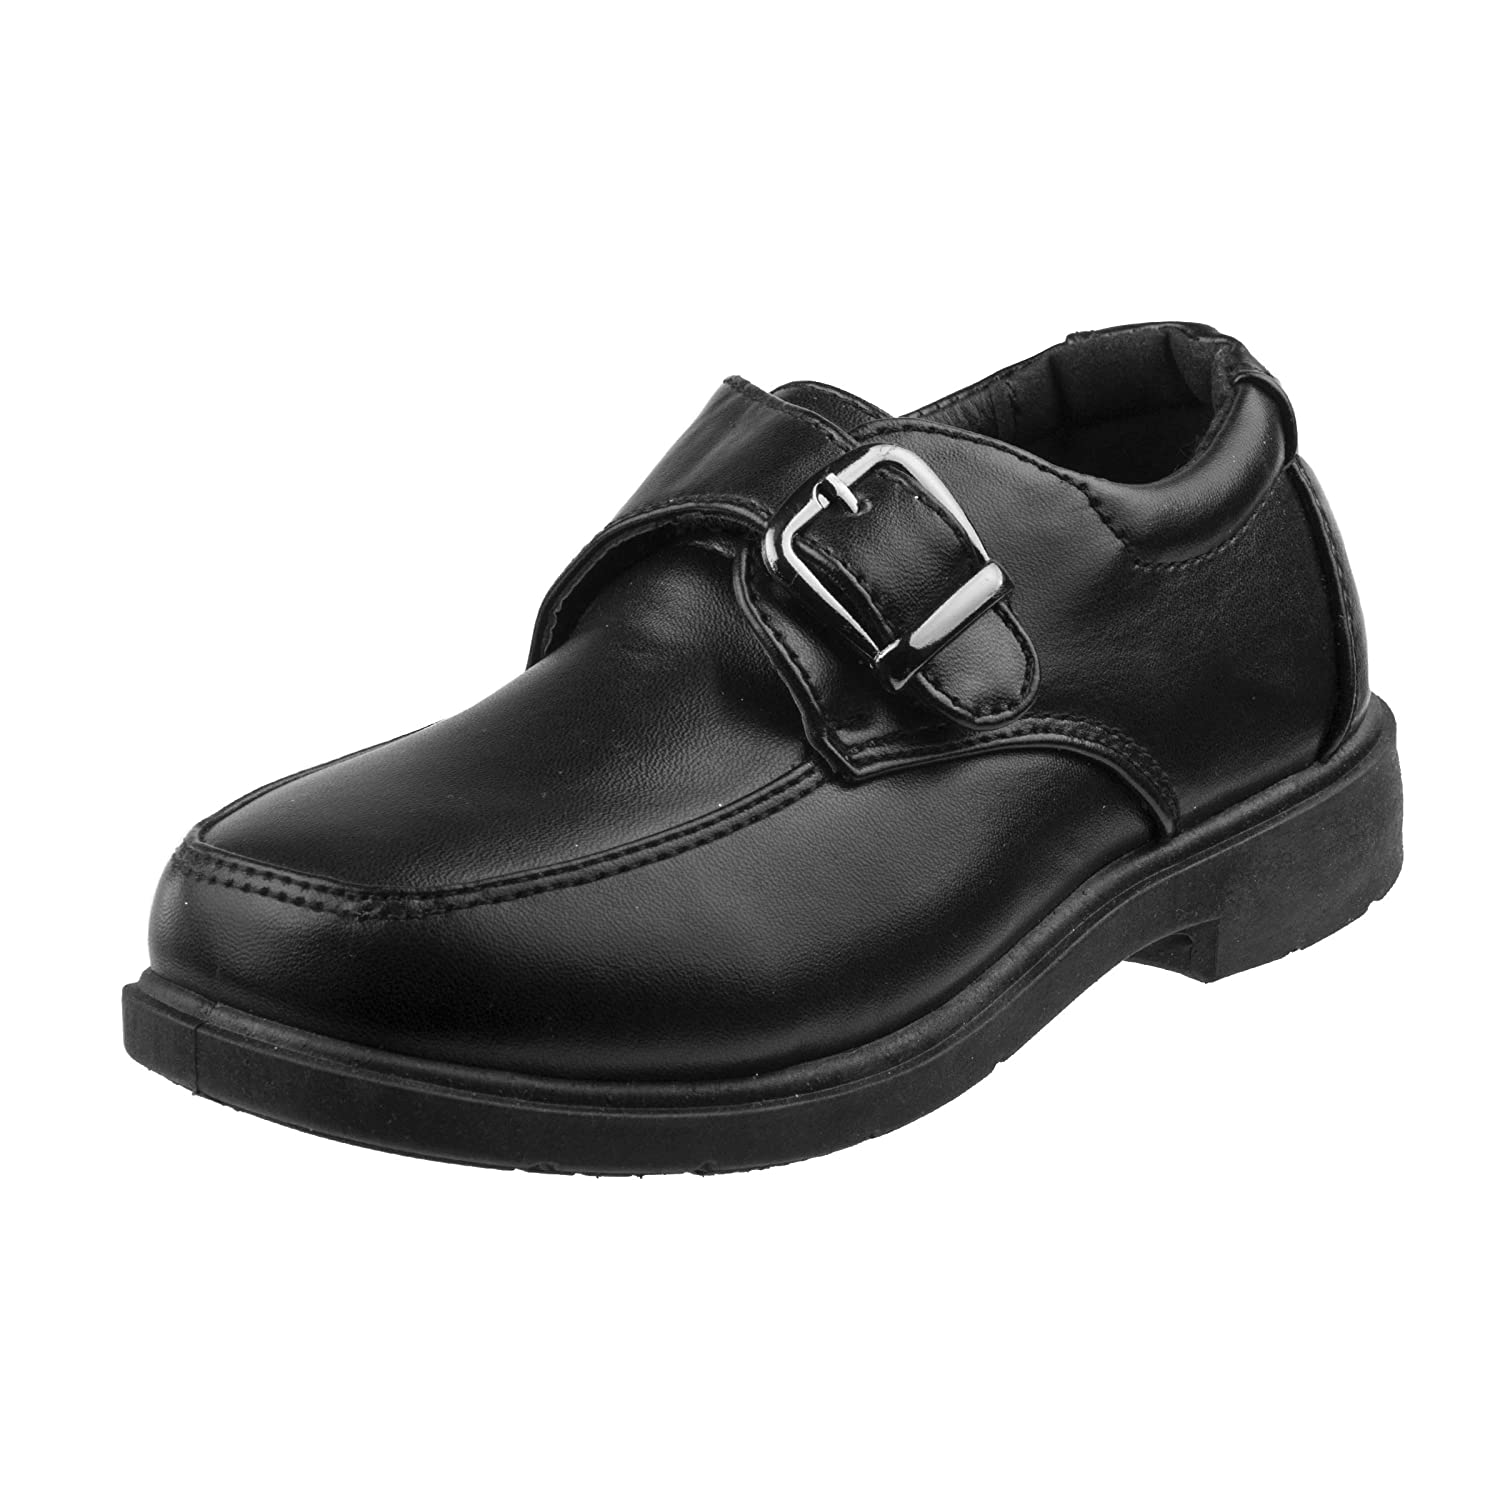 Josmo Boys Comfort School Uniform Shoes (Toddler/Little Kid/Big Kid)